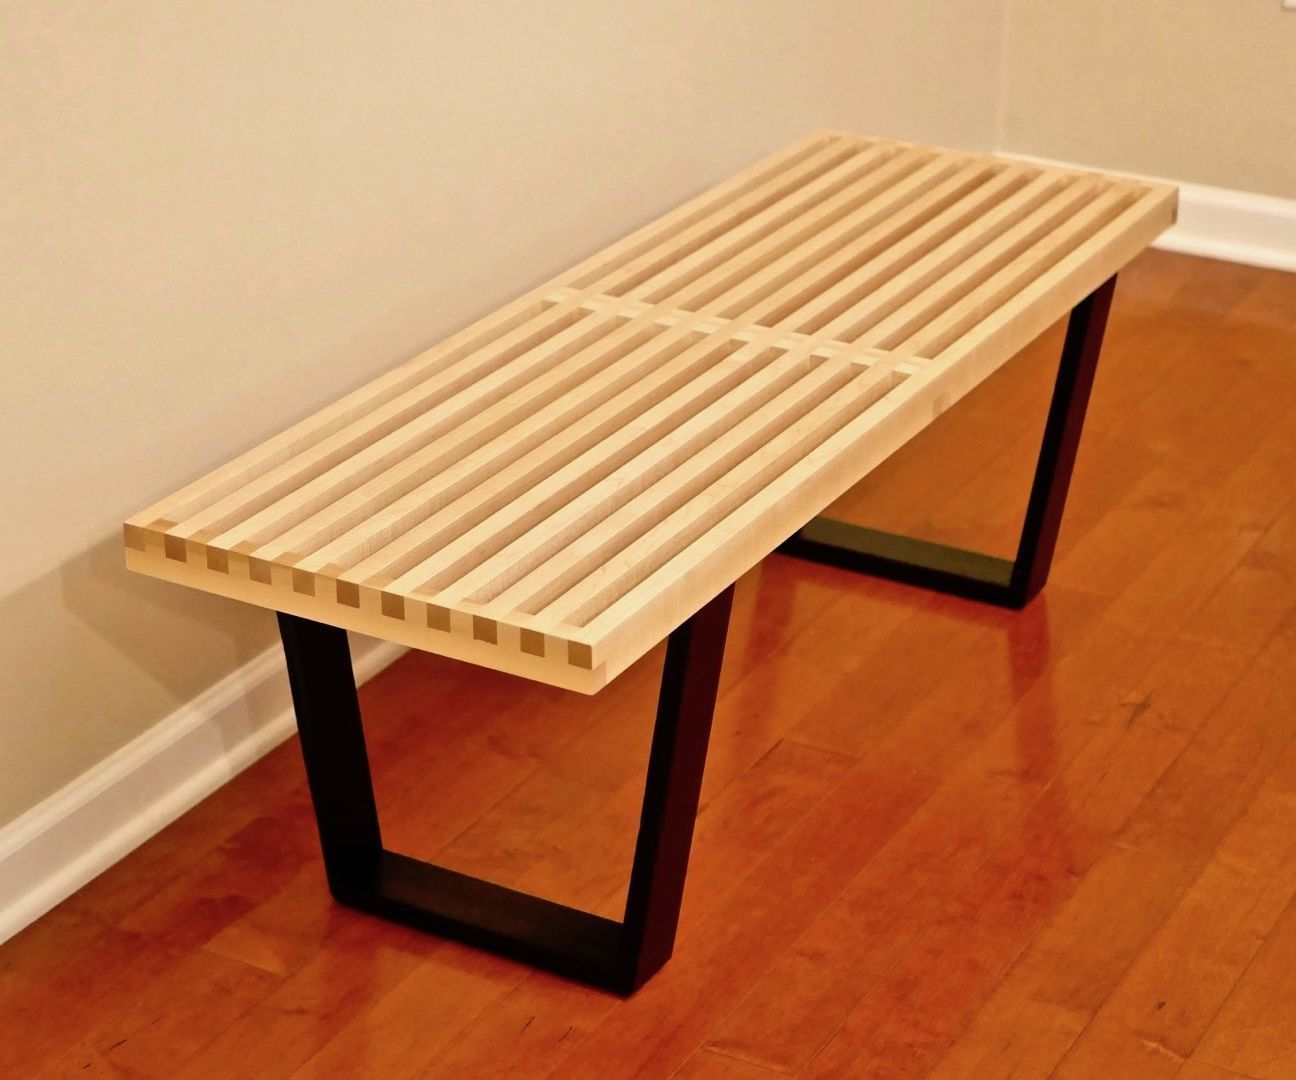 Mid Century Solid Wood Small Platform Slat Bench Or Coffee: DIY Mid-Century Modern Slatted Bench